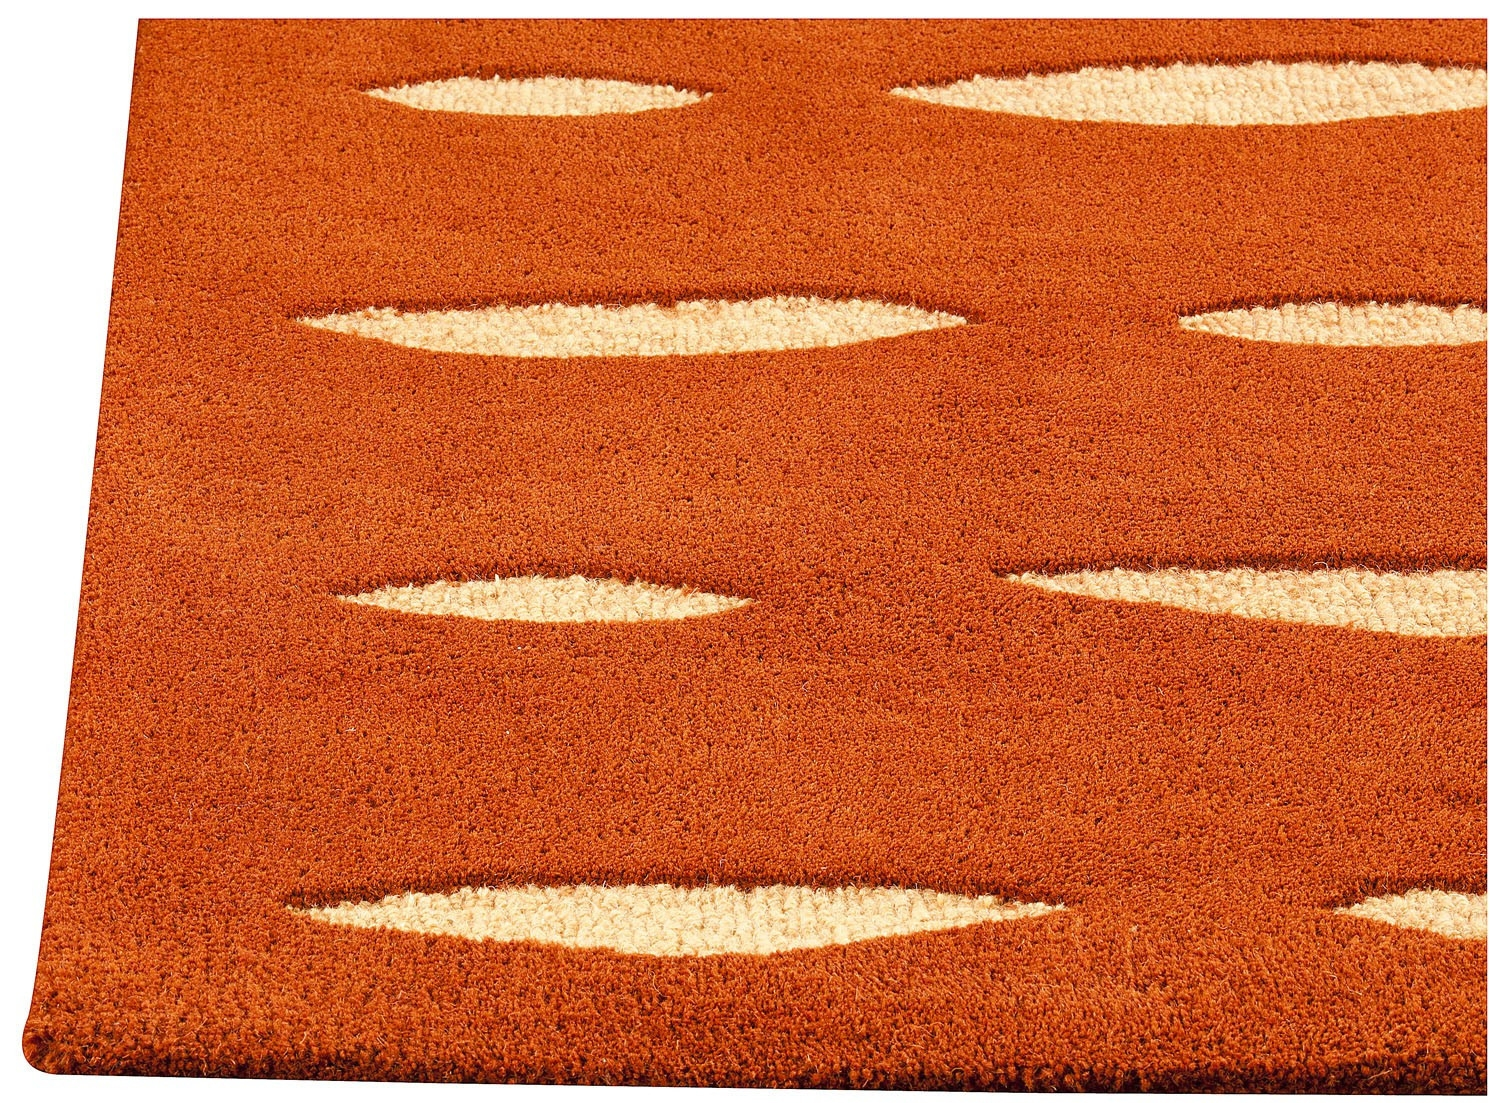 Rug Orange Area Rug 810 Wuqiangco Throughout Orange Floor Rugs (Image 11 of 15)